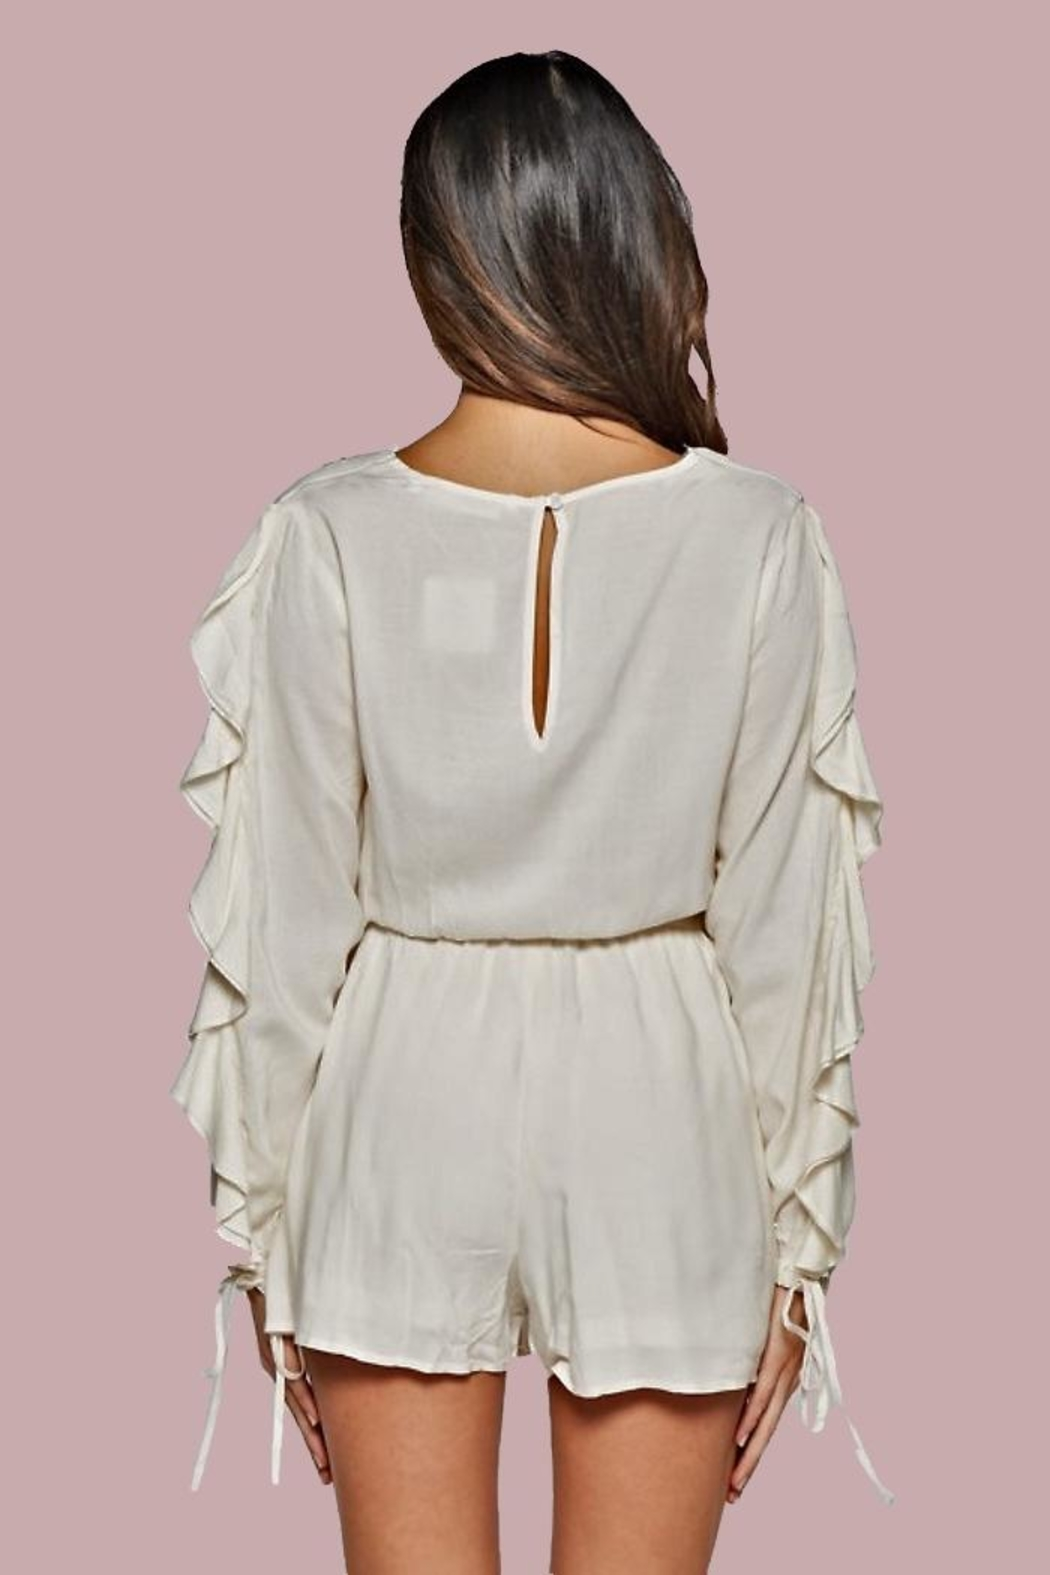 People Outfitter Azalia Ruffle-Sleeve Romper - Front Full Image